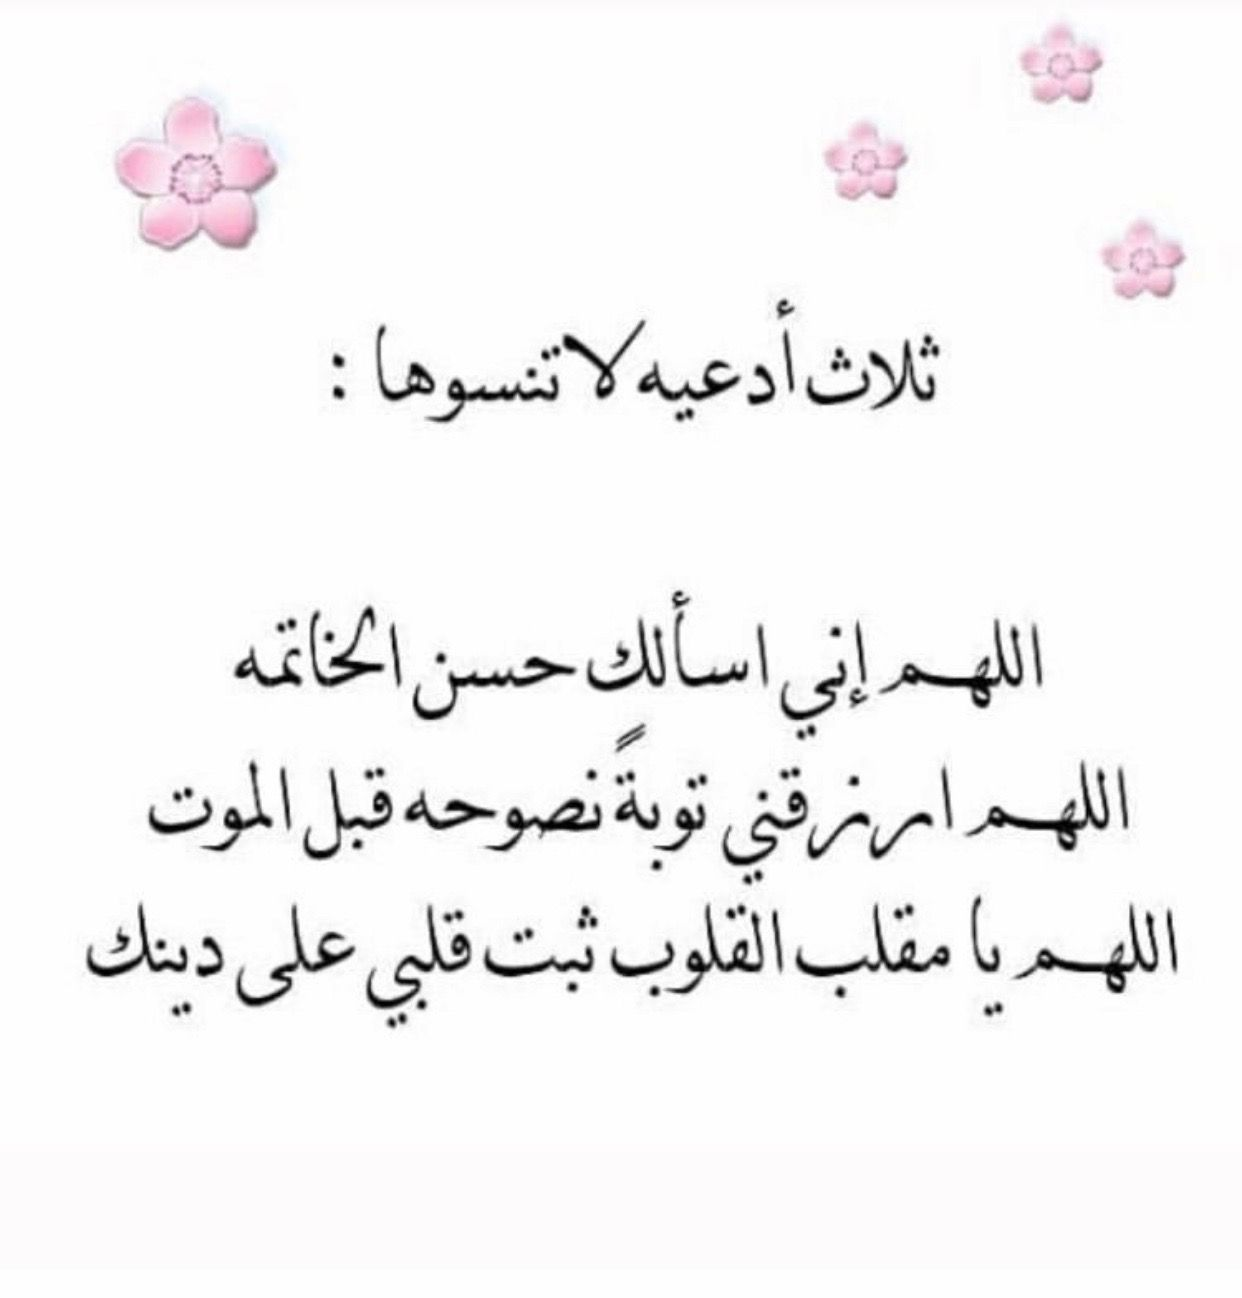 Pin By خليفه On اذكارات Arabic Words Words Quotes